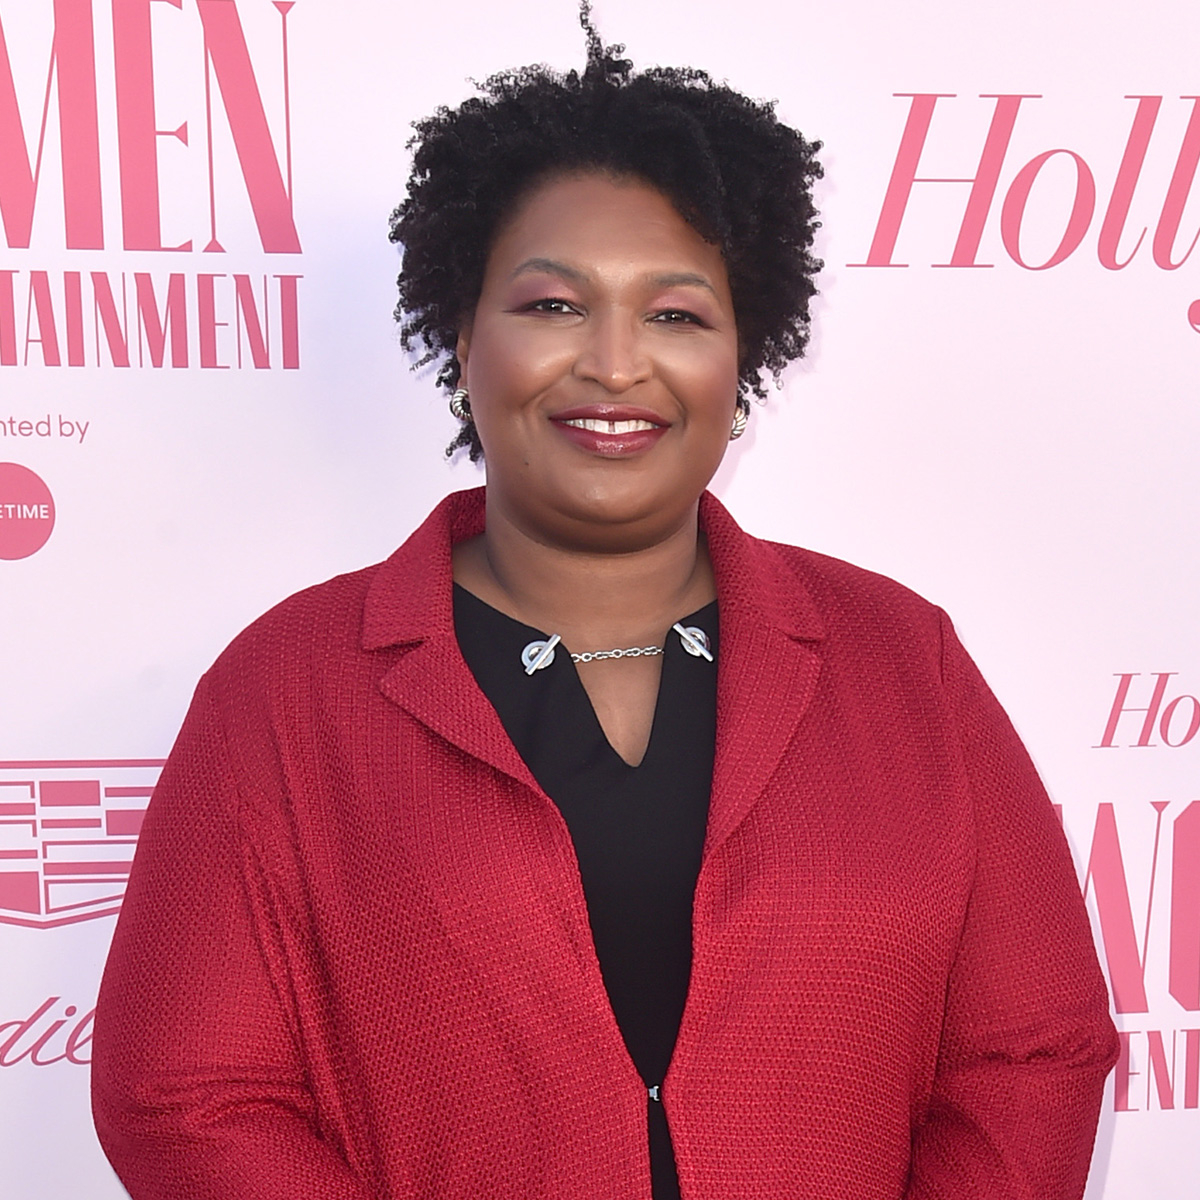 How Stacey Abrams Became One of the Most Inspirational Women in America